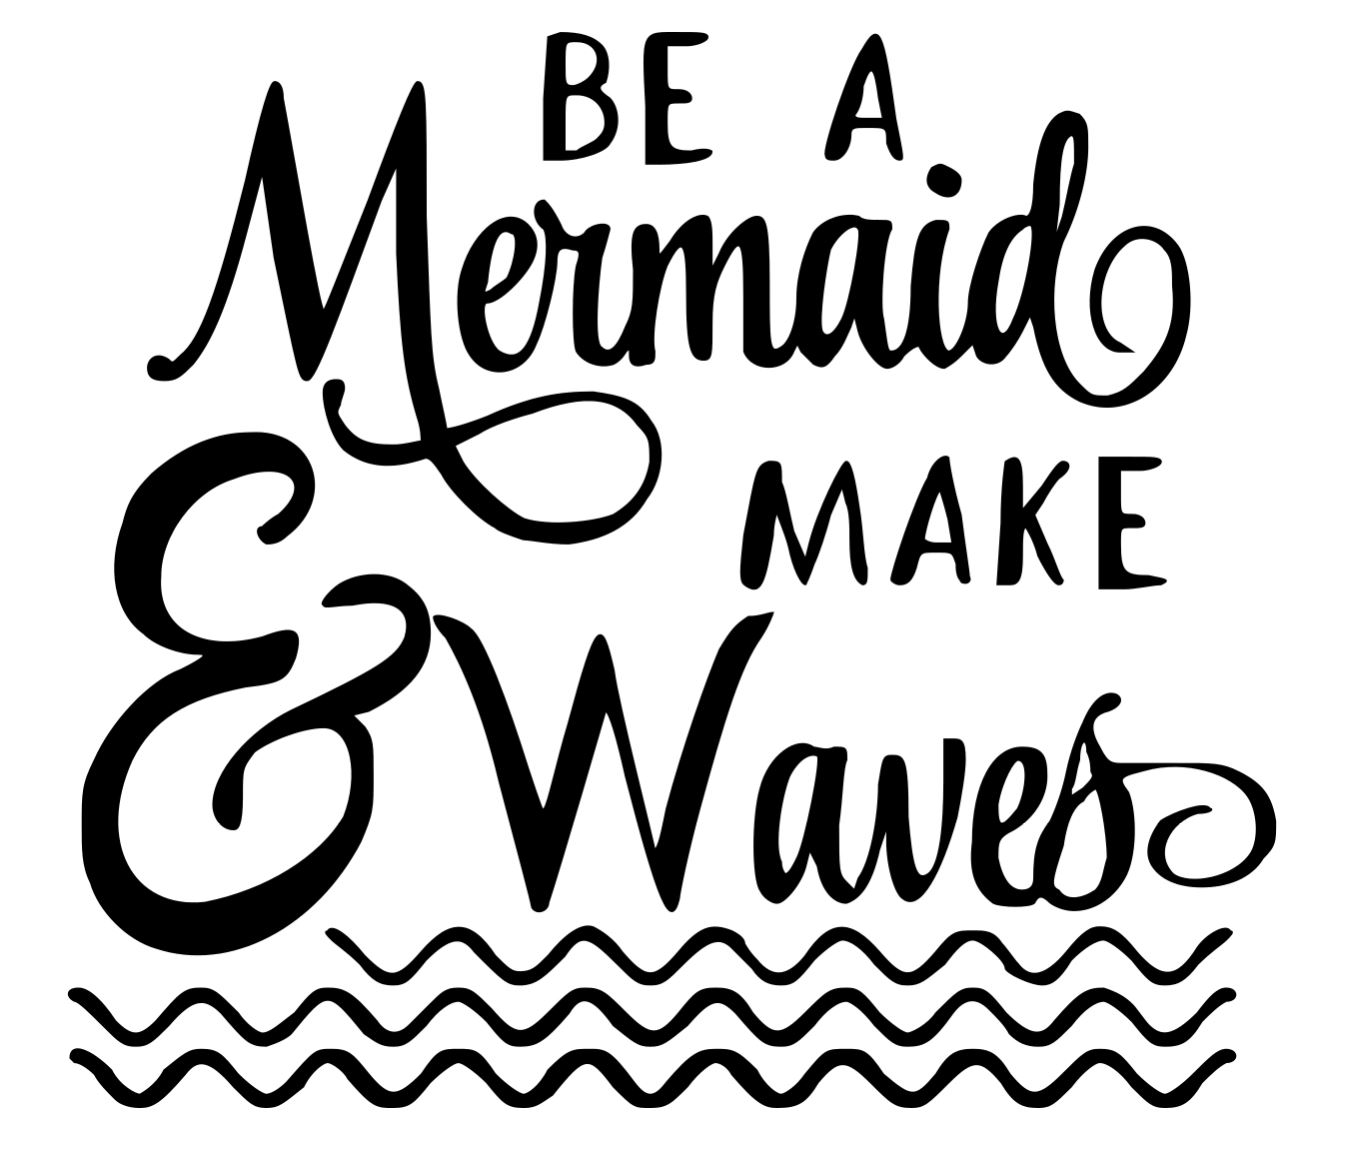 Be a mermaid, make waves - Copy - Copy